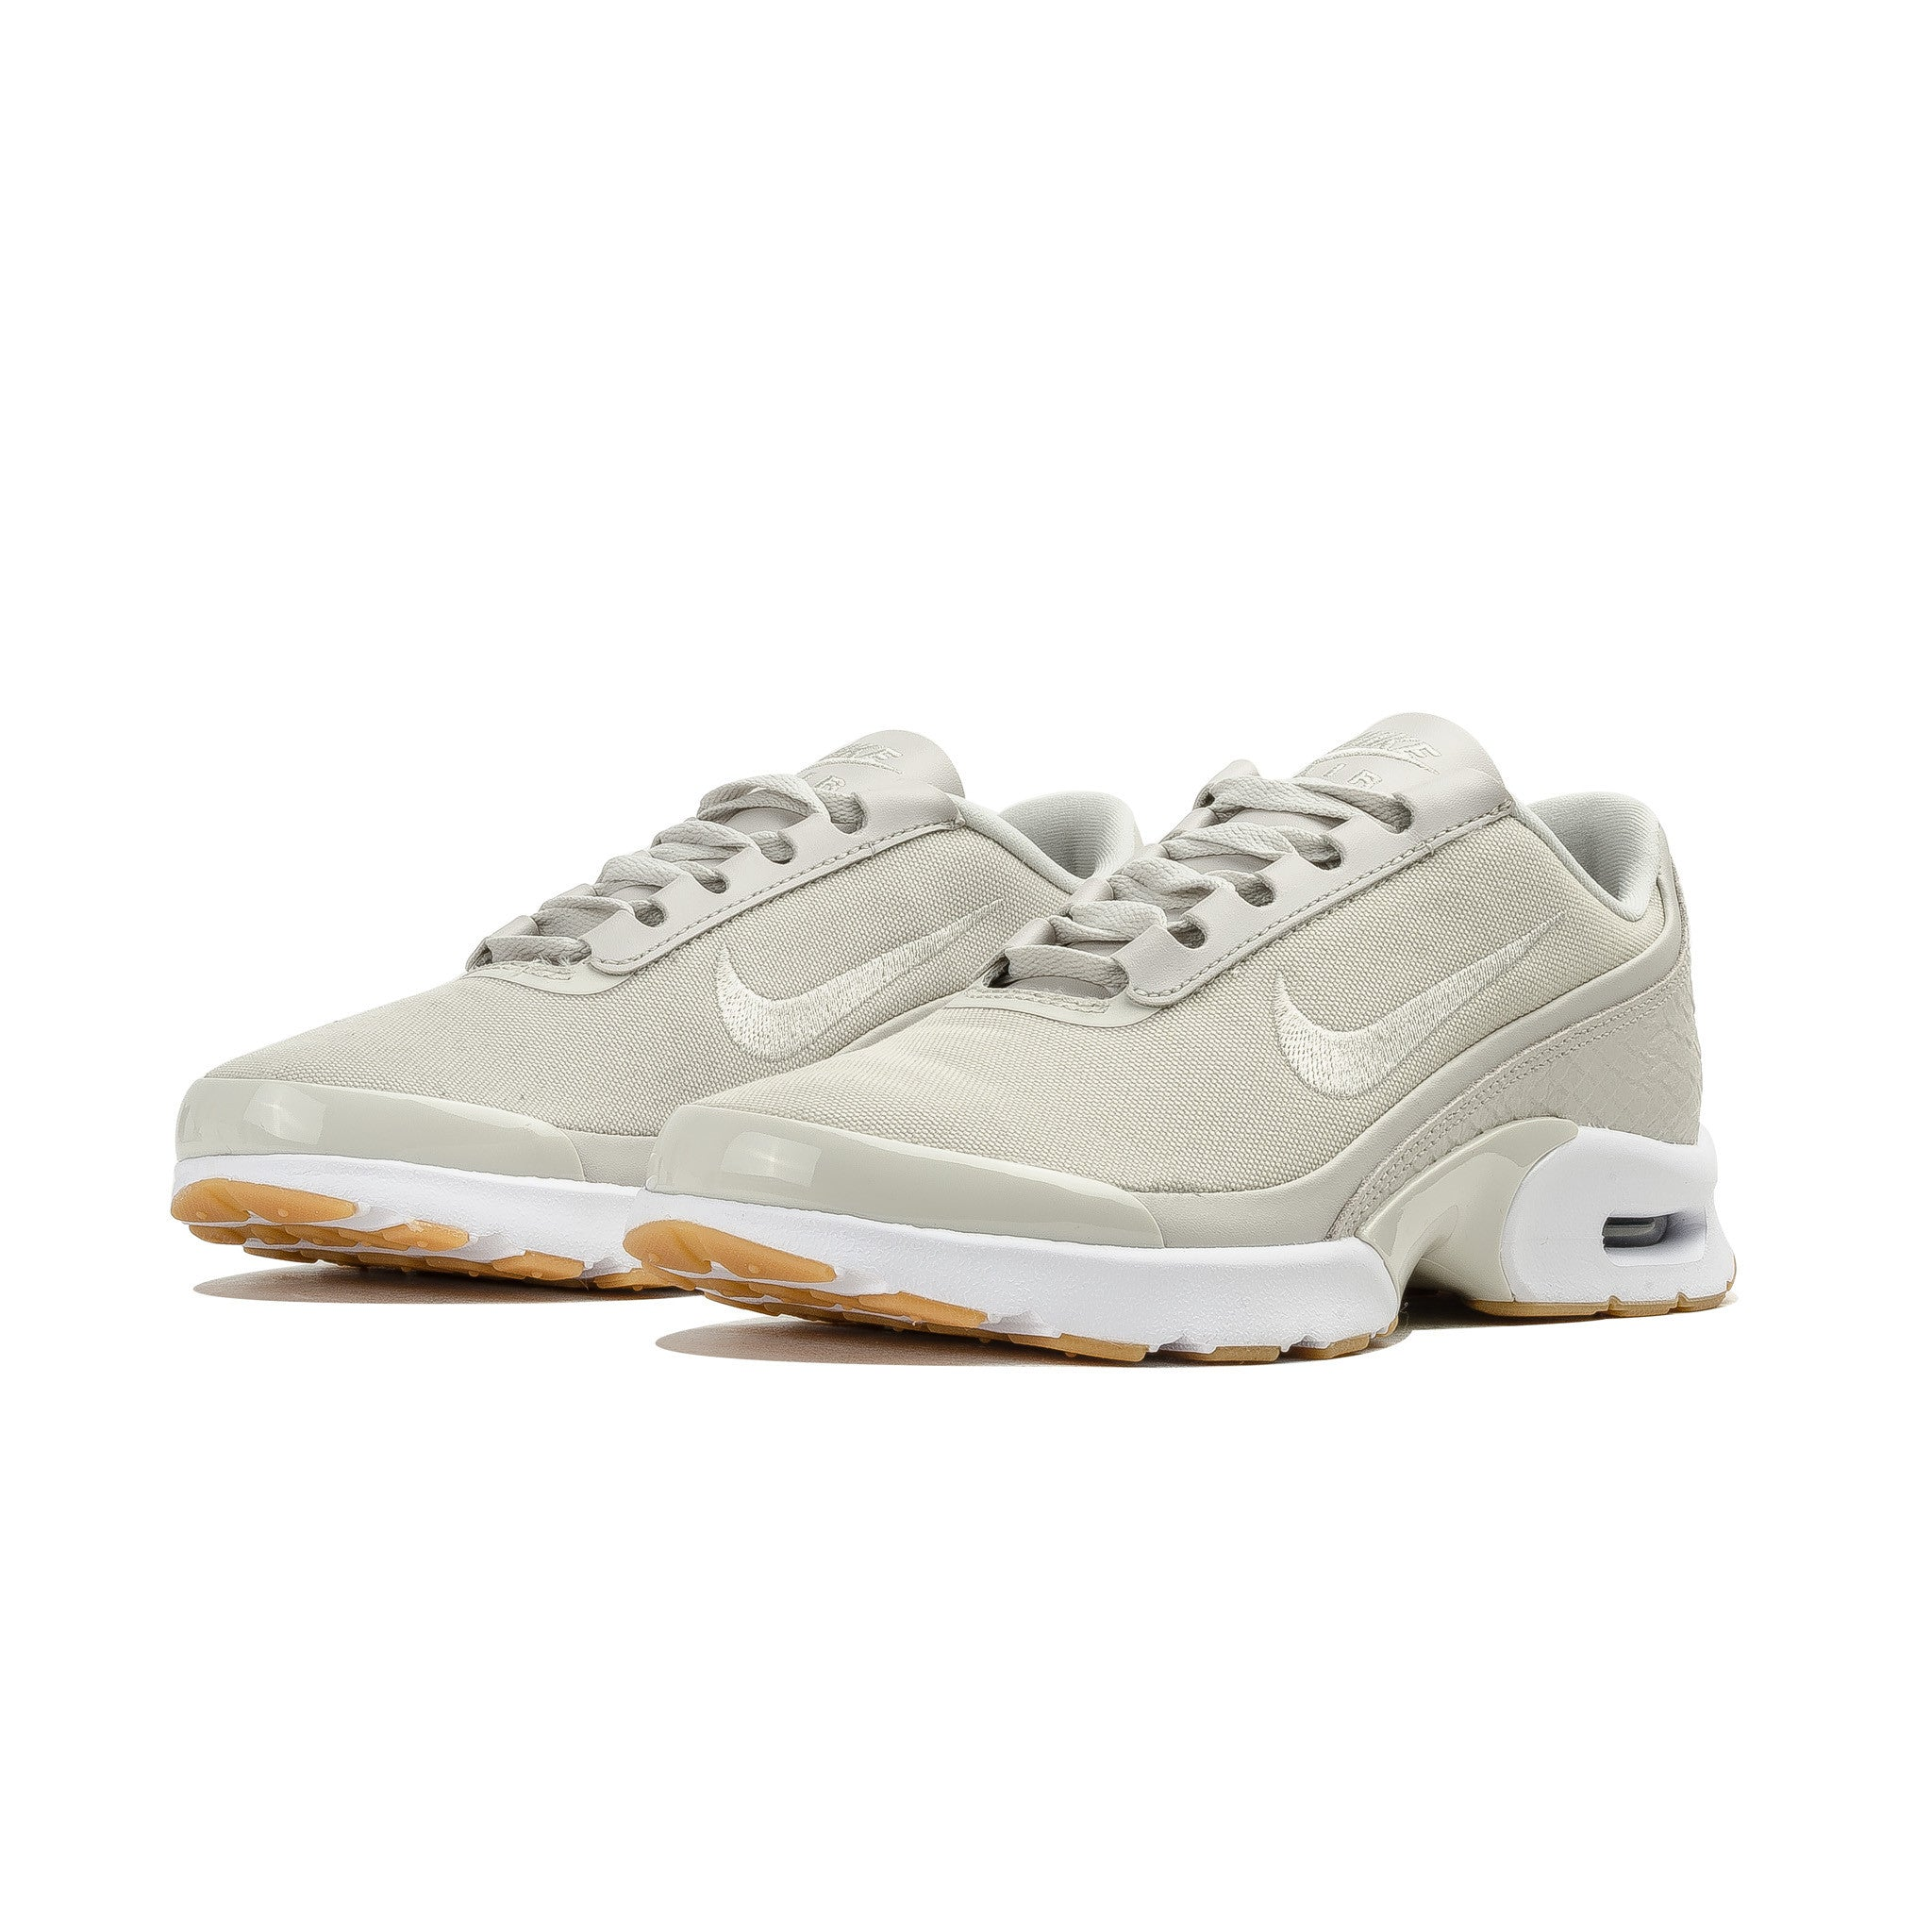 Nike Air Max Jewell SE - 8655S